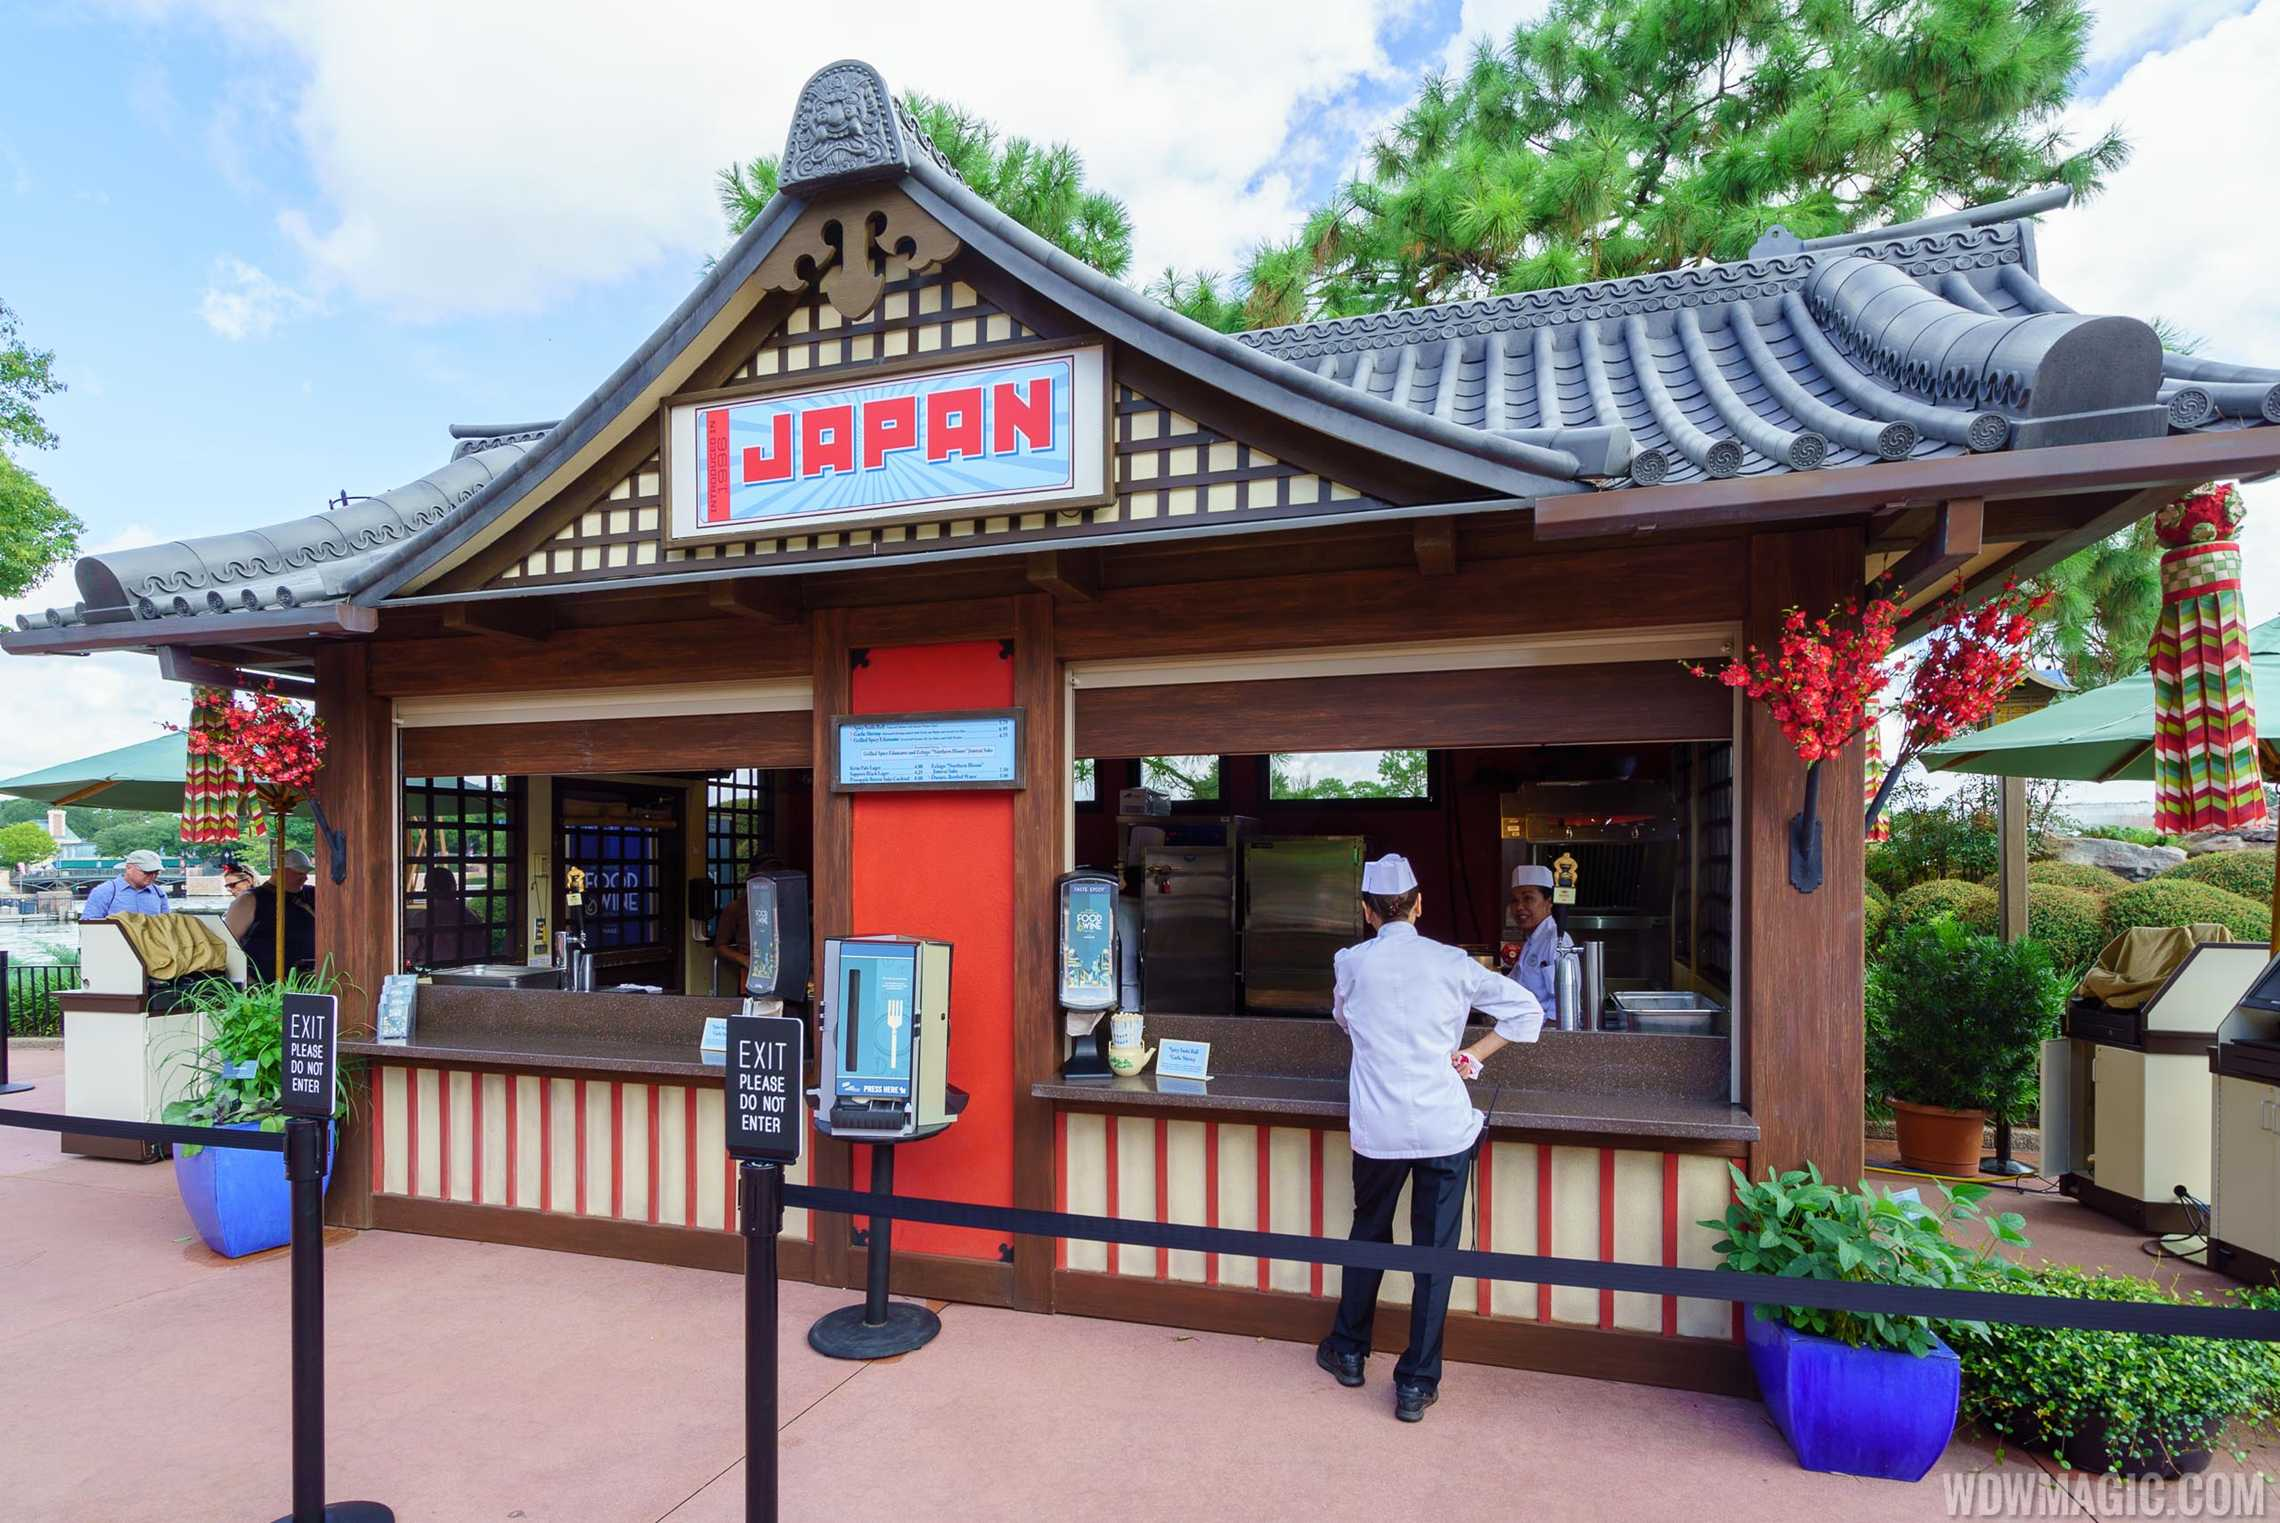 Food and Wine Marketplace kiosk at the Japan Pavilion